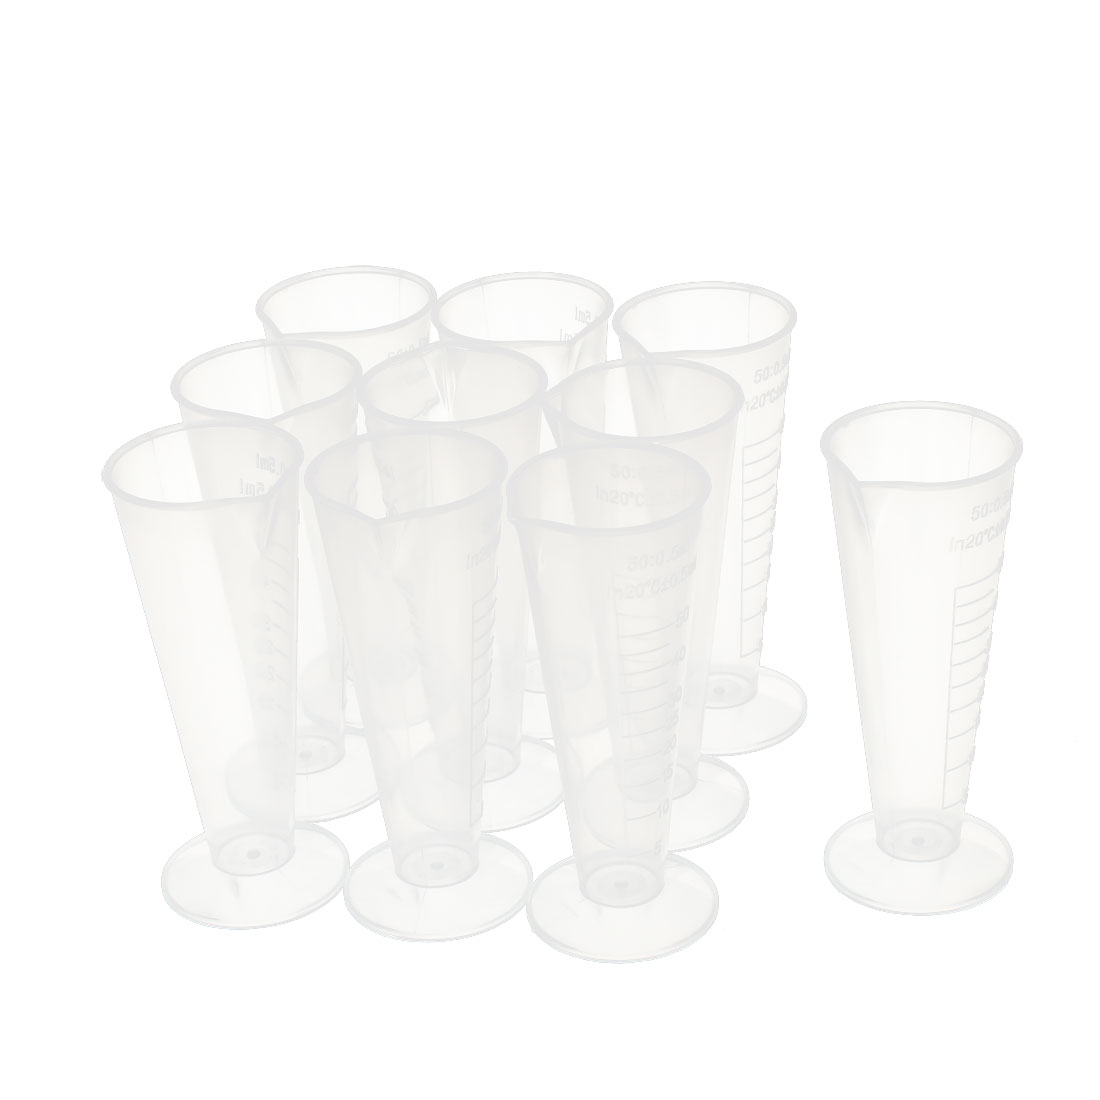 10 Pcs 50mL Plastic Conical Beaker Laboratory Graduated Measuring Cylinder Cup